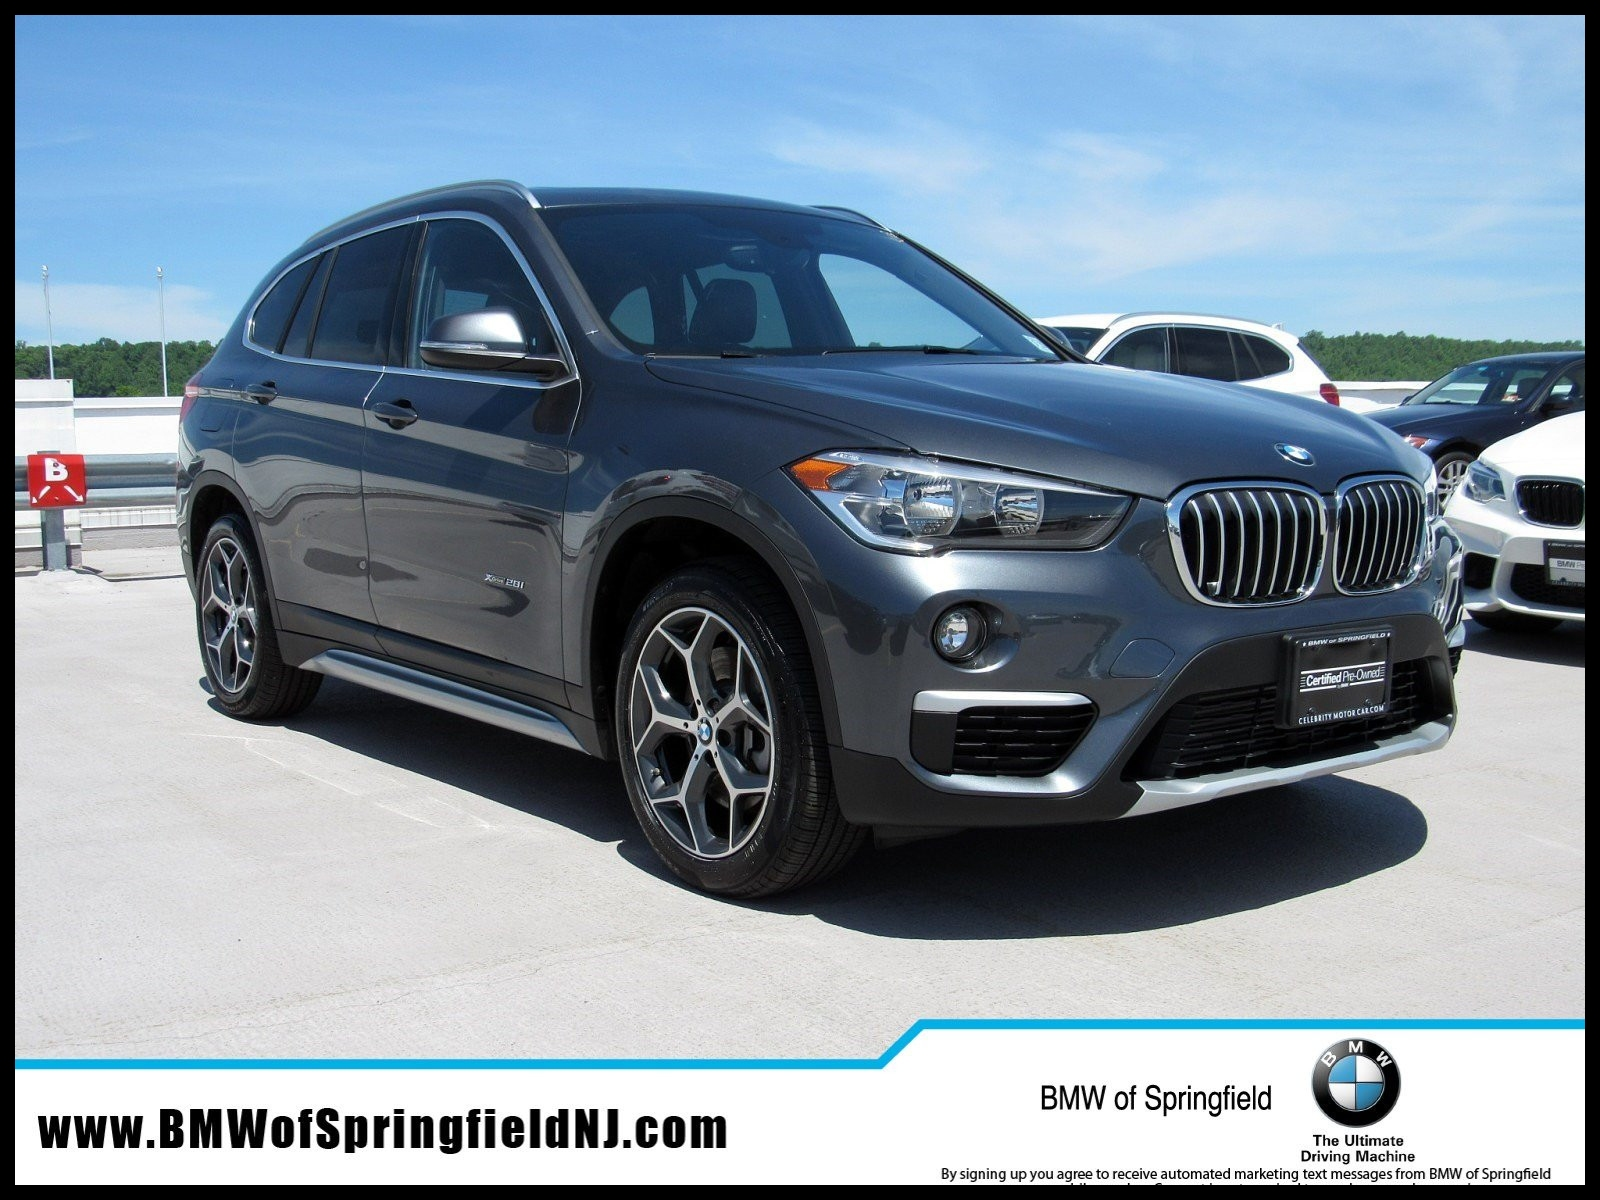 Bmw Cpo Transfer New Certified Pre Owned 2018 Bmw X1 Xdrive28i Sport Utility In